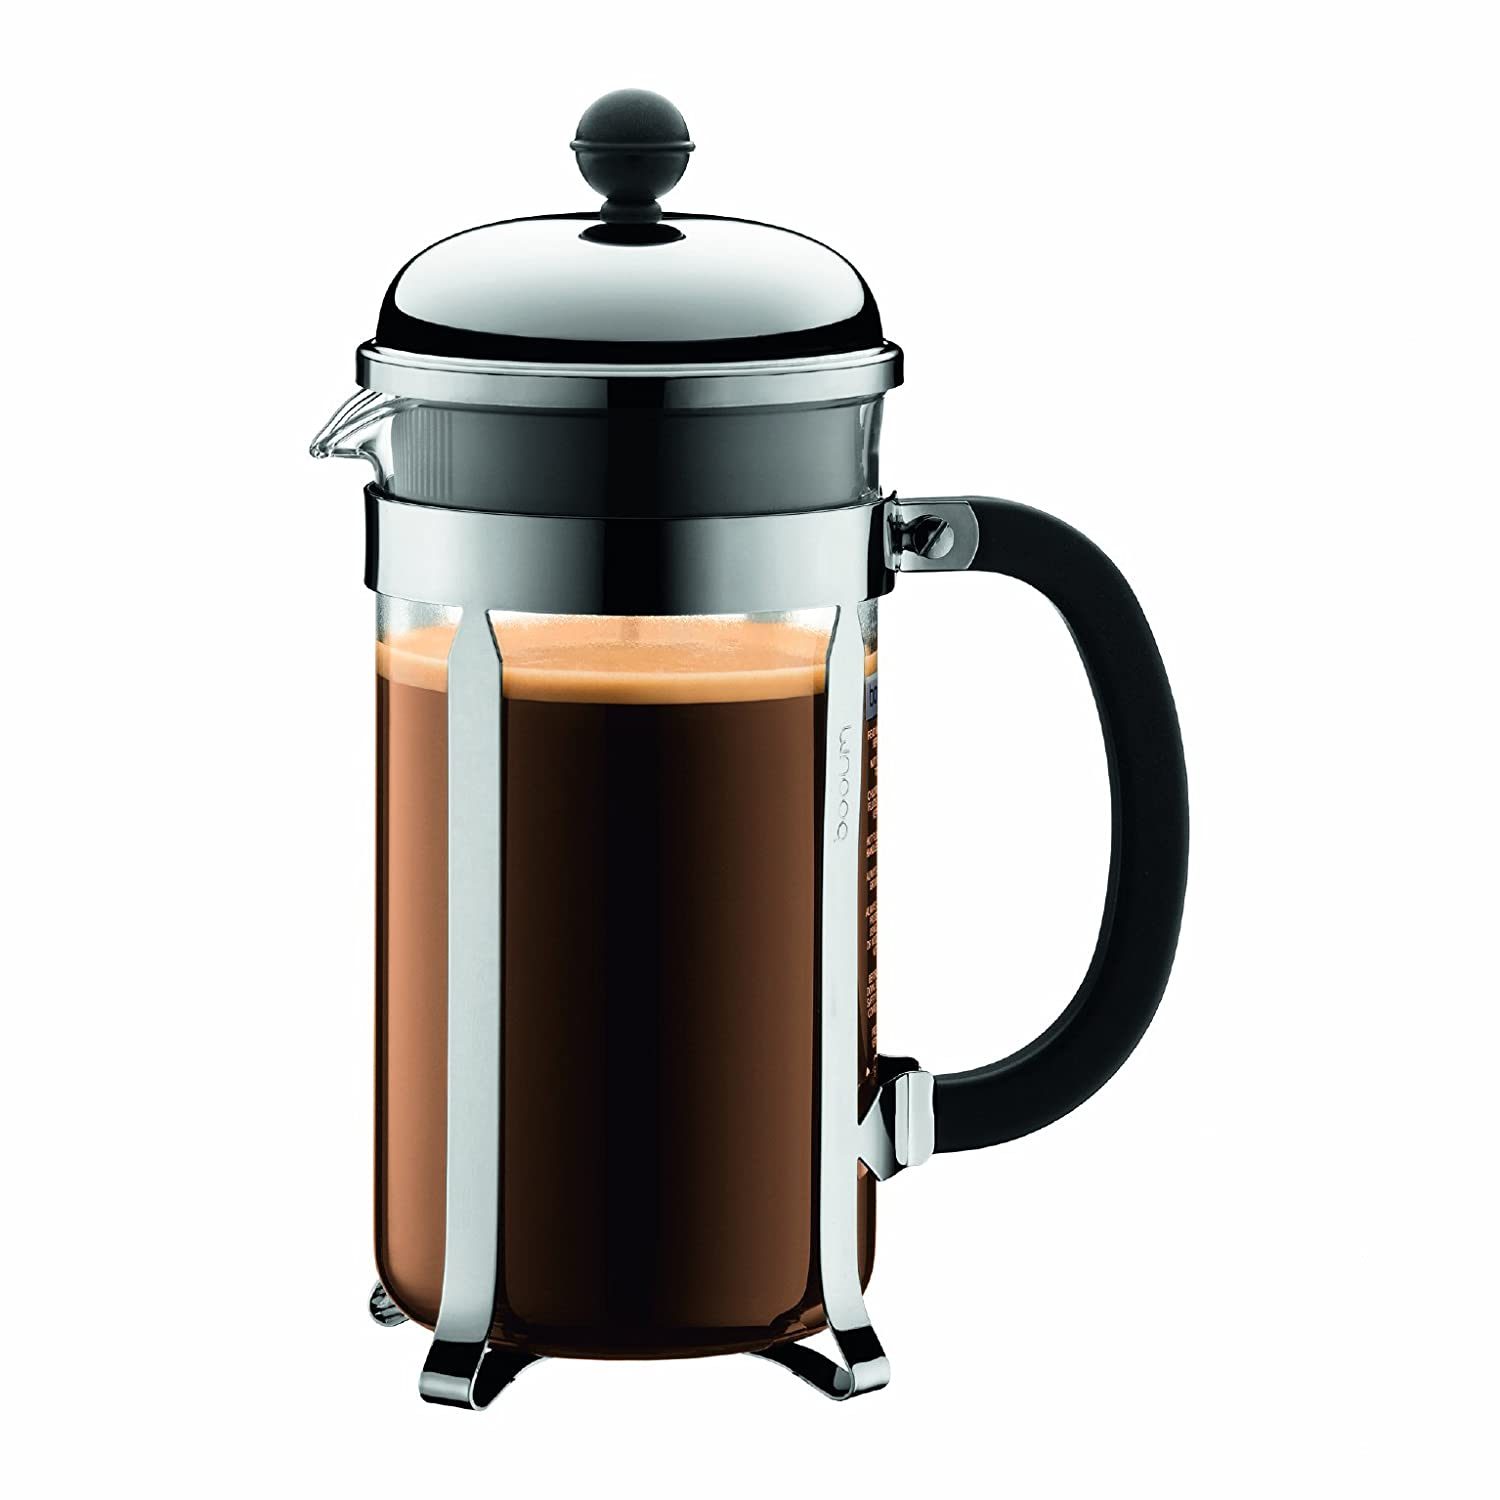 The Bodum Chambord 8 Cup is also a top rated French press and we highly recommend it.